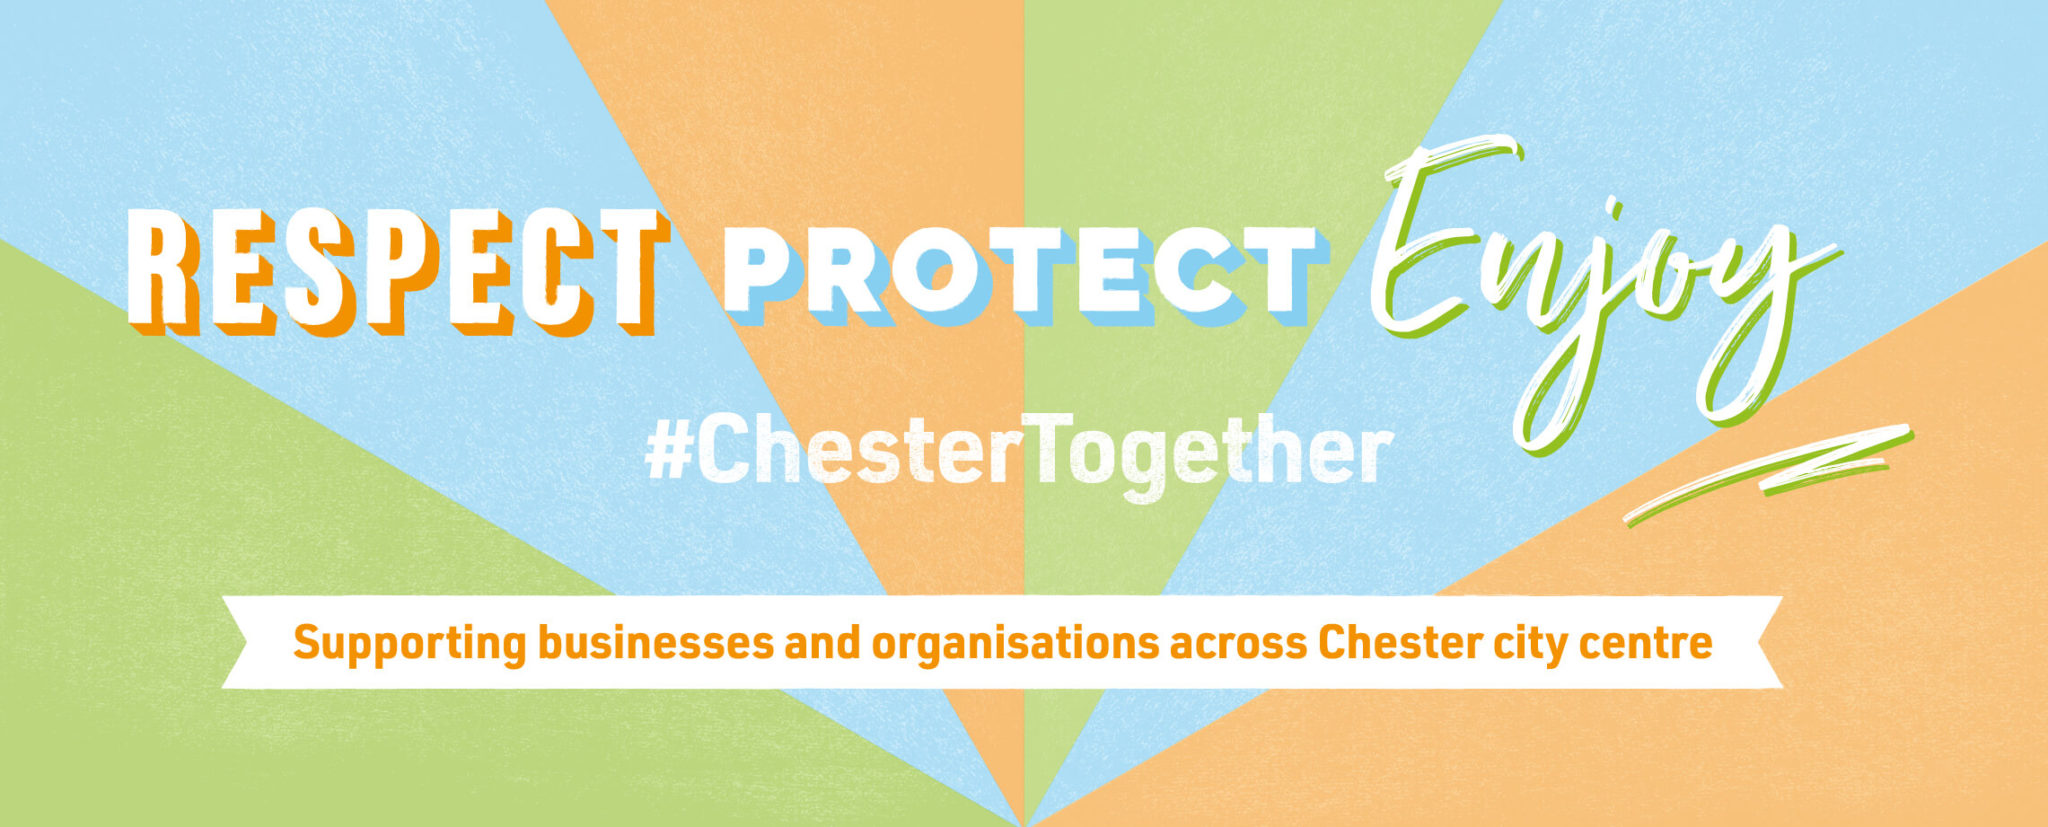 Respect, Protect, Enjoy. #ChesterTogether